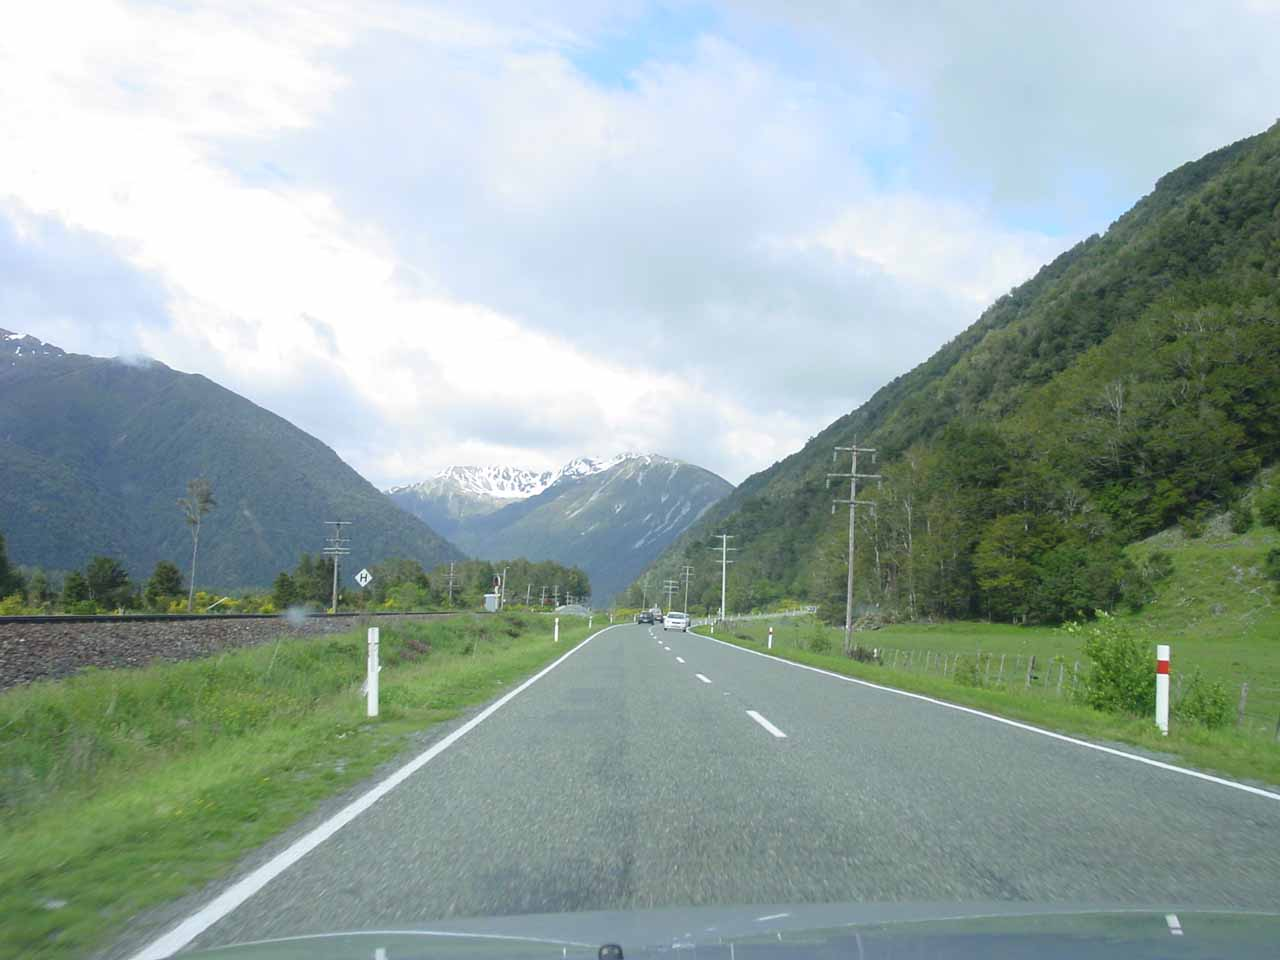 Driving along the Arthur's Pass Highway (SH73) as we were headed towards Otira